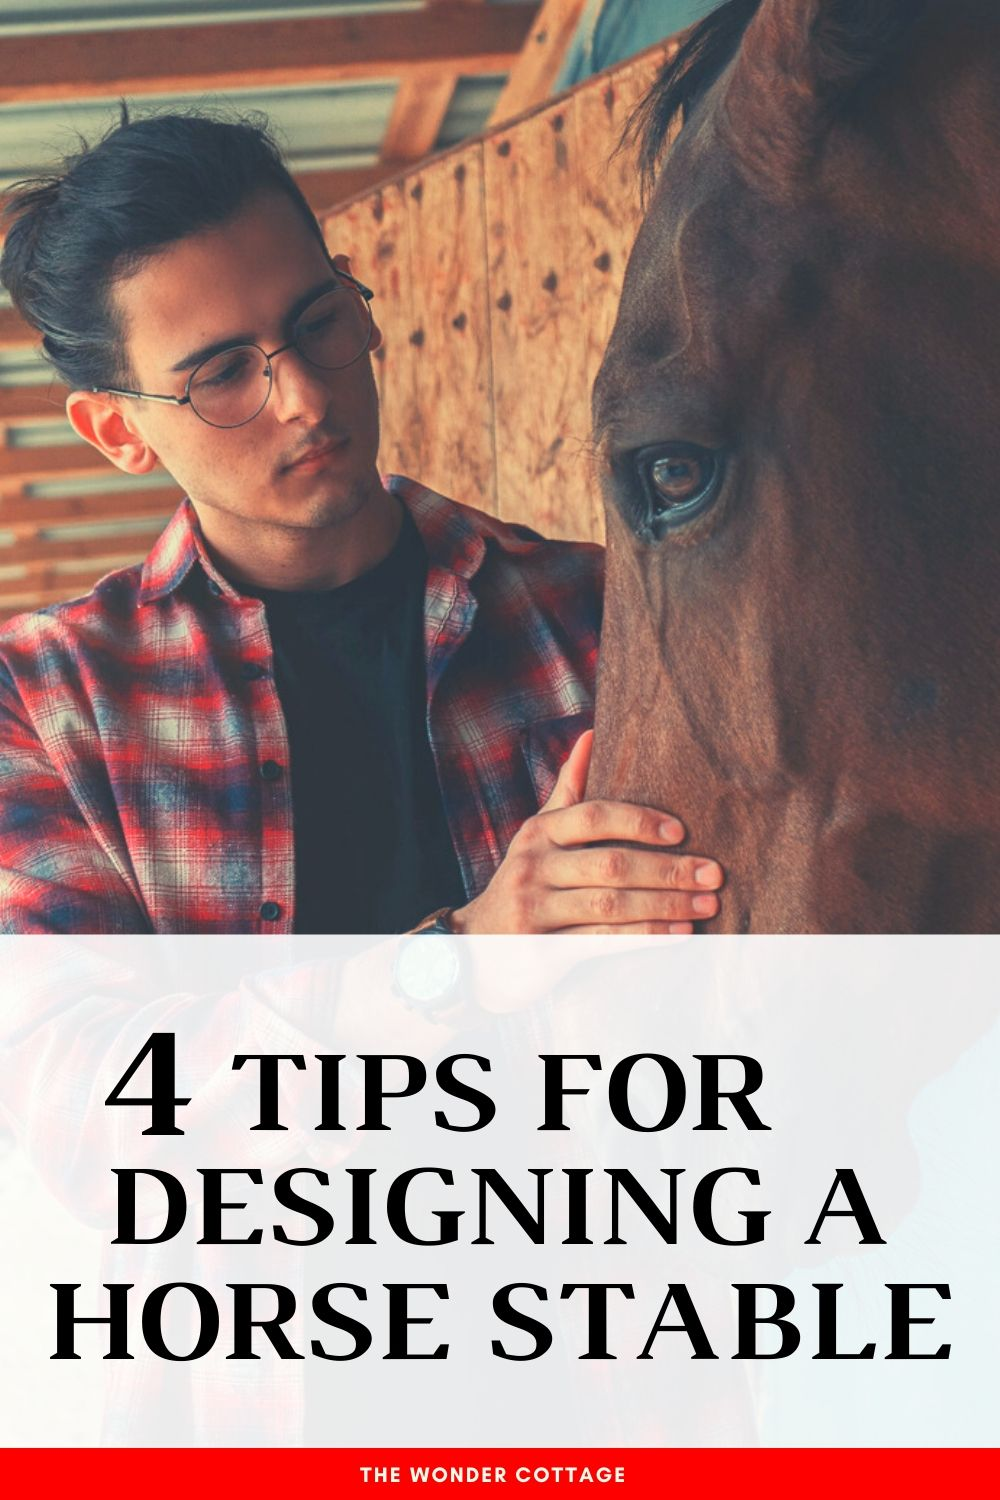 4 tips for designing a horse stable